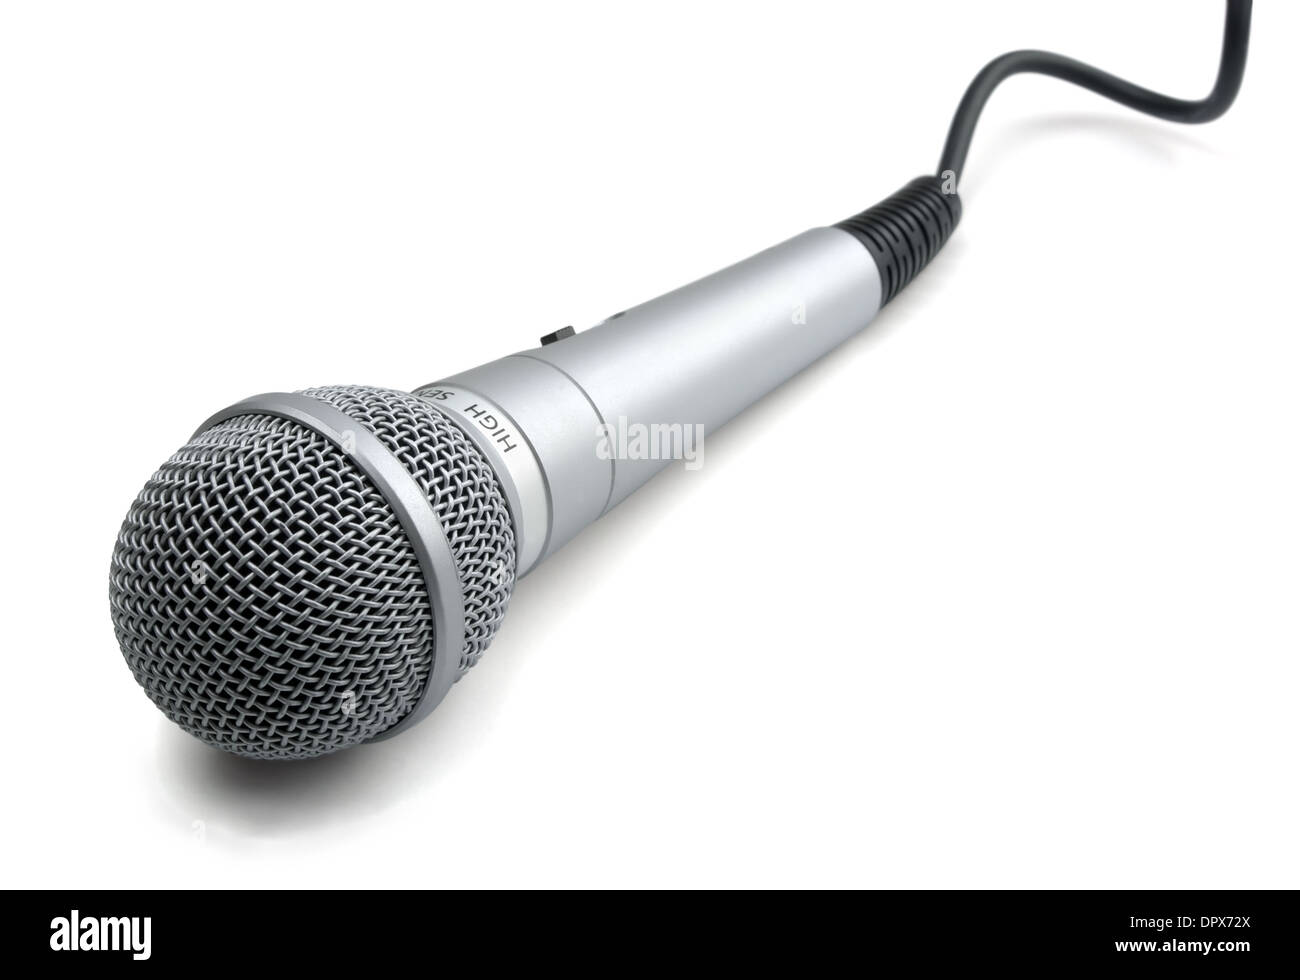 Silver microphone with black wire isolated on white - Stock Image